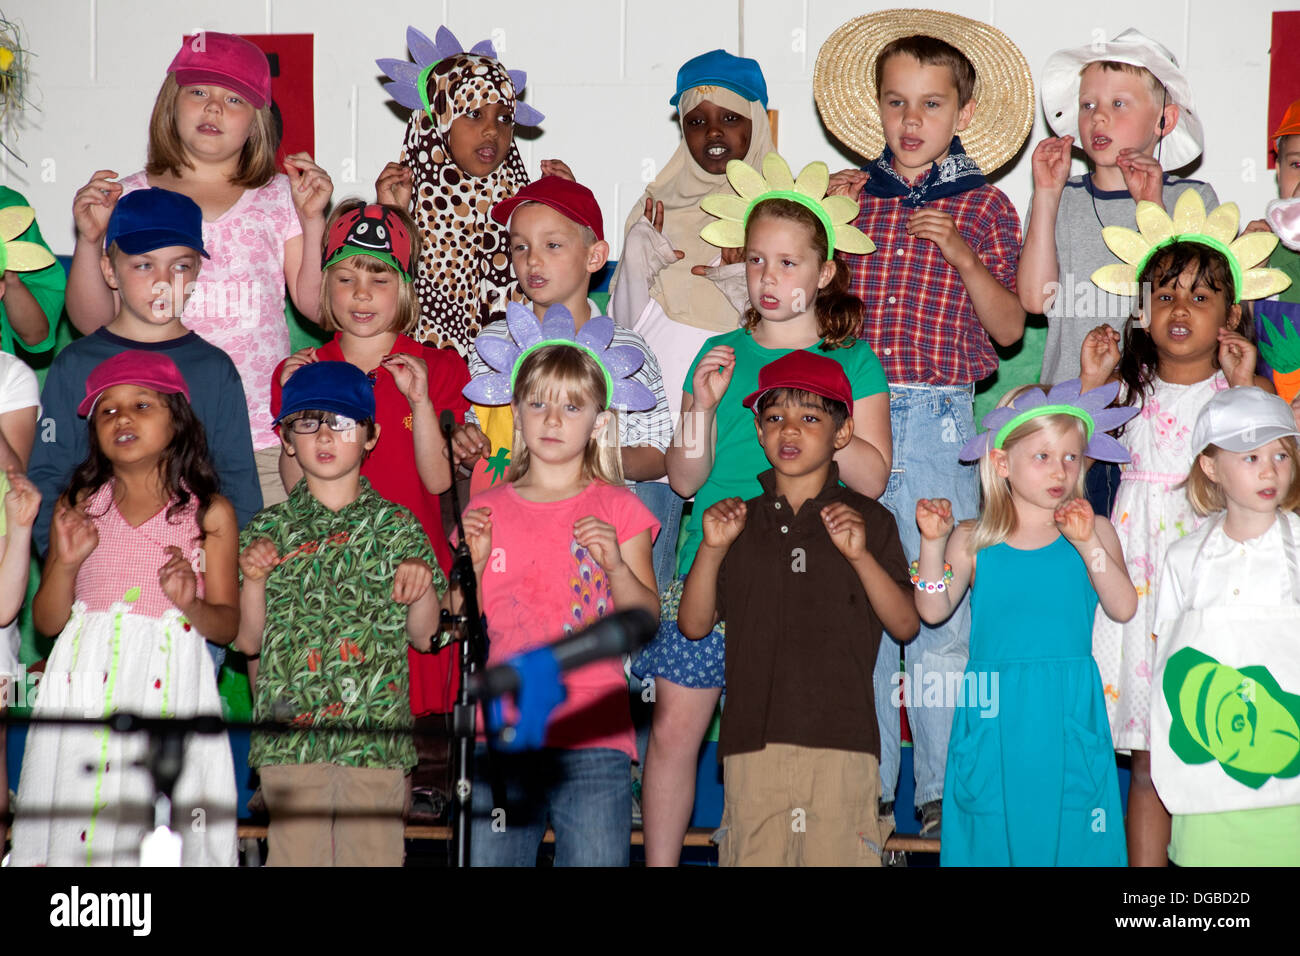 Students age 8 Muslim, Black and white singing in Spring Garden Musical. Horace Mann Elementary School St Paul Minnesota MN USA - Stock Image